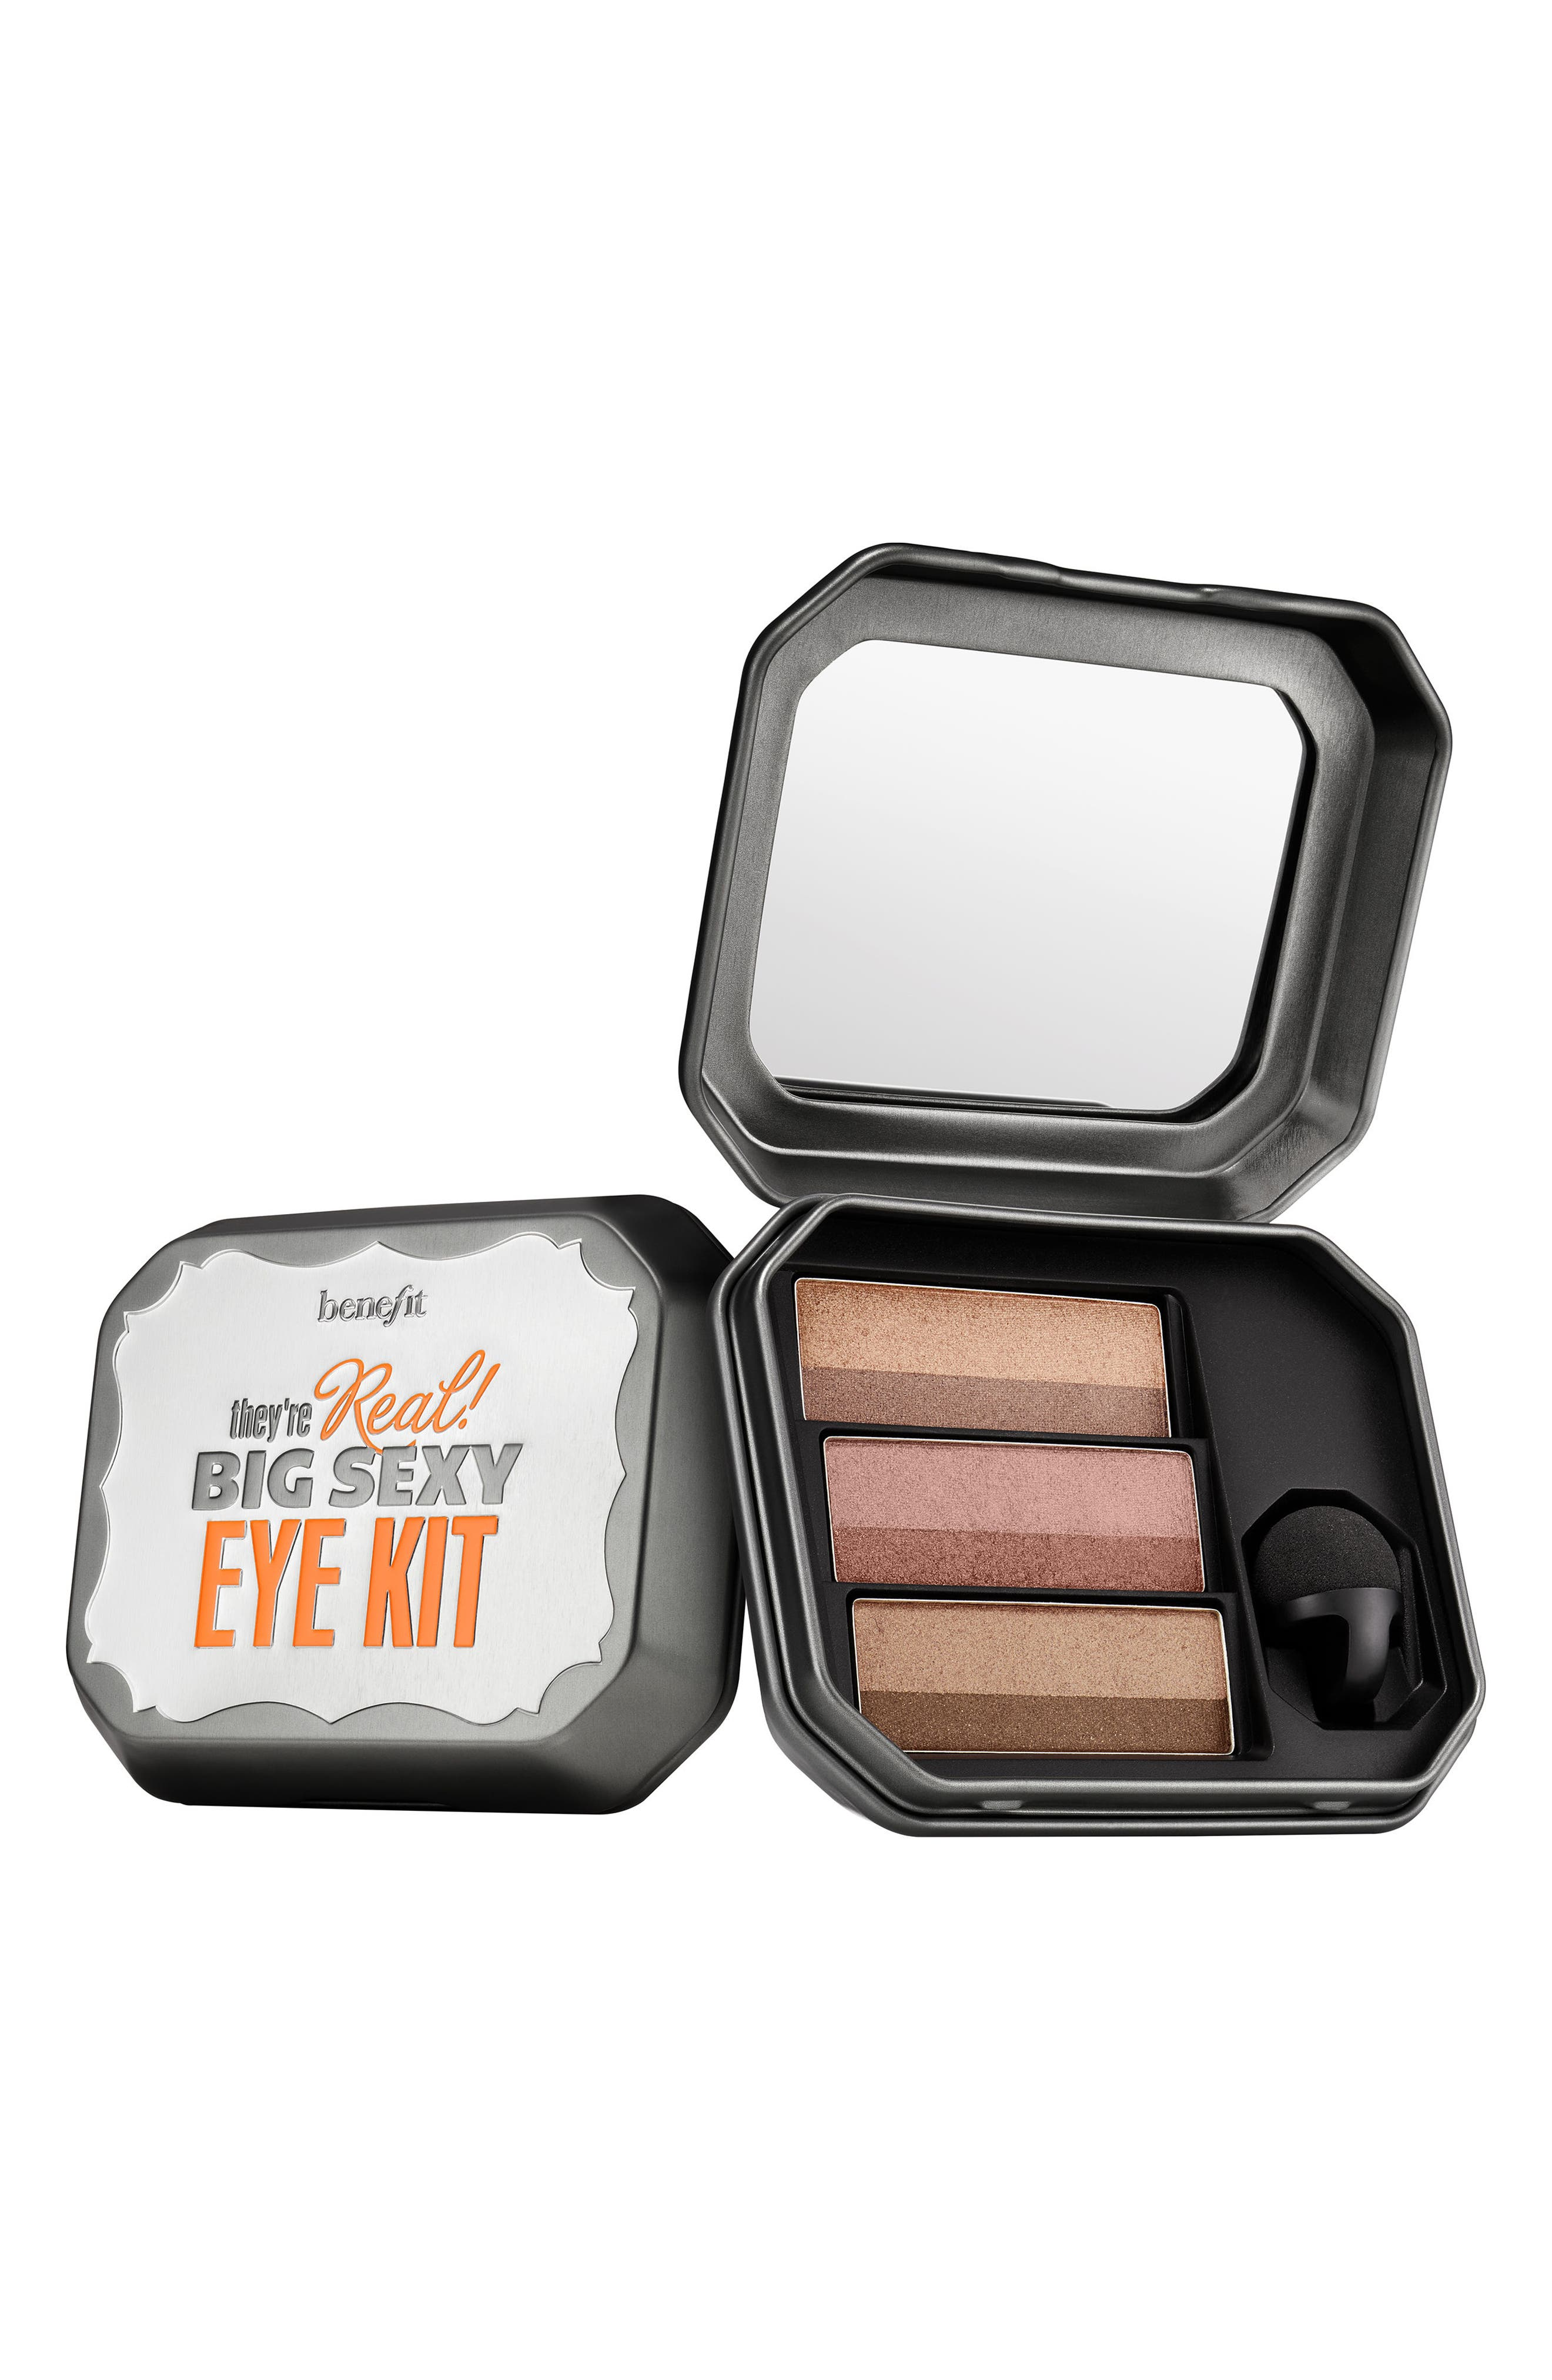 Benefit They're Real! Big Sexy Eye Kit,                             Main thumbnail 1, color,                             NO COLOR